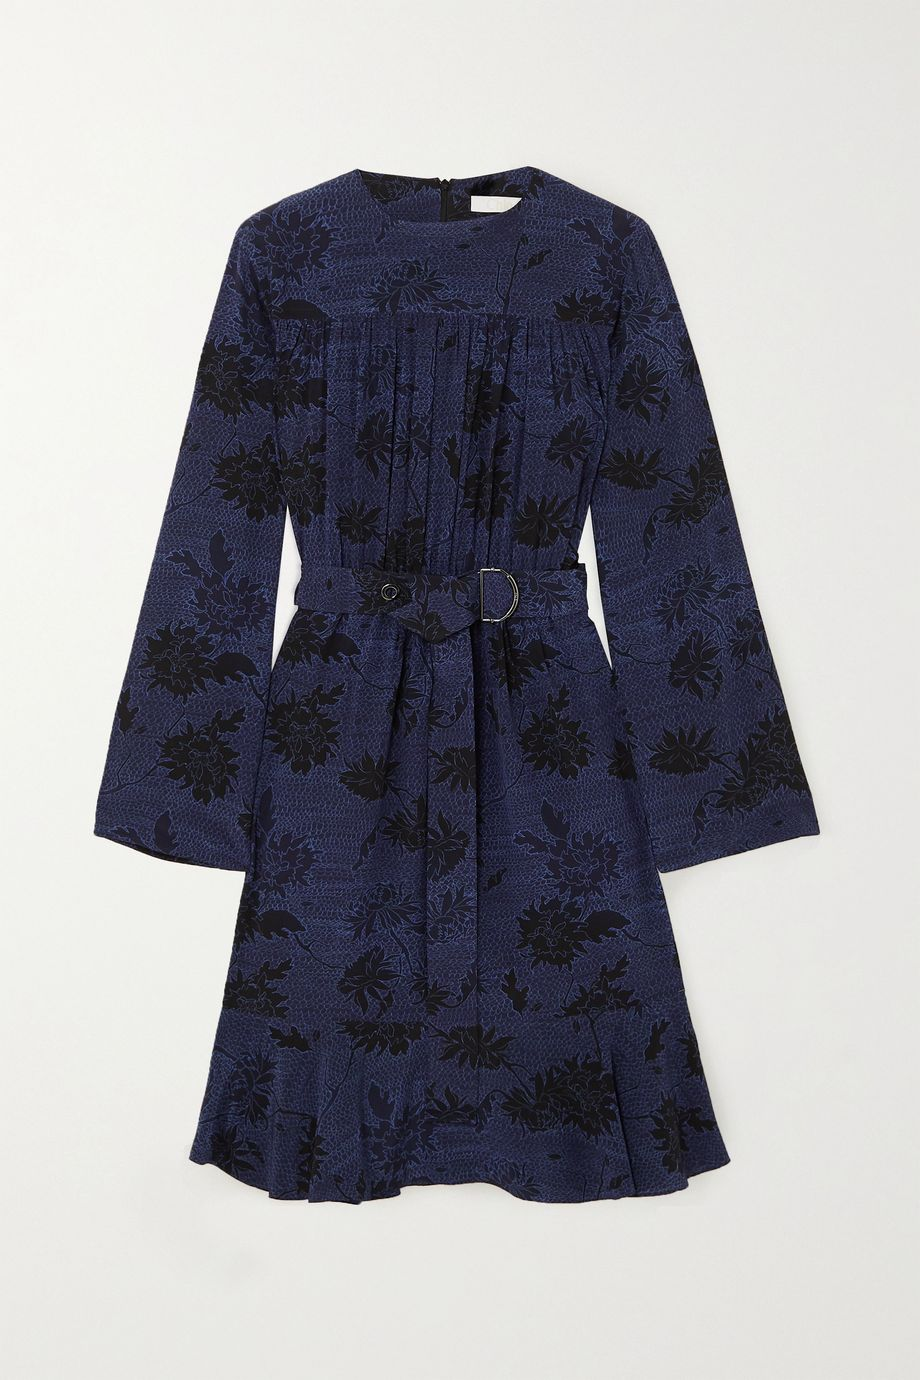 Chloé Belted floral-print silk crepe de chine dress